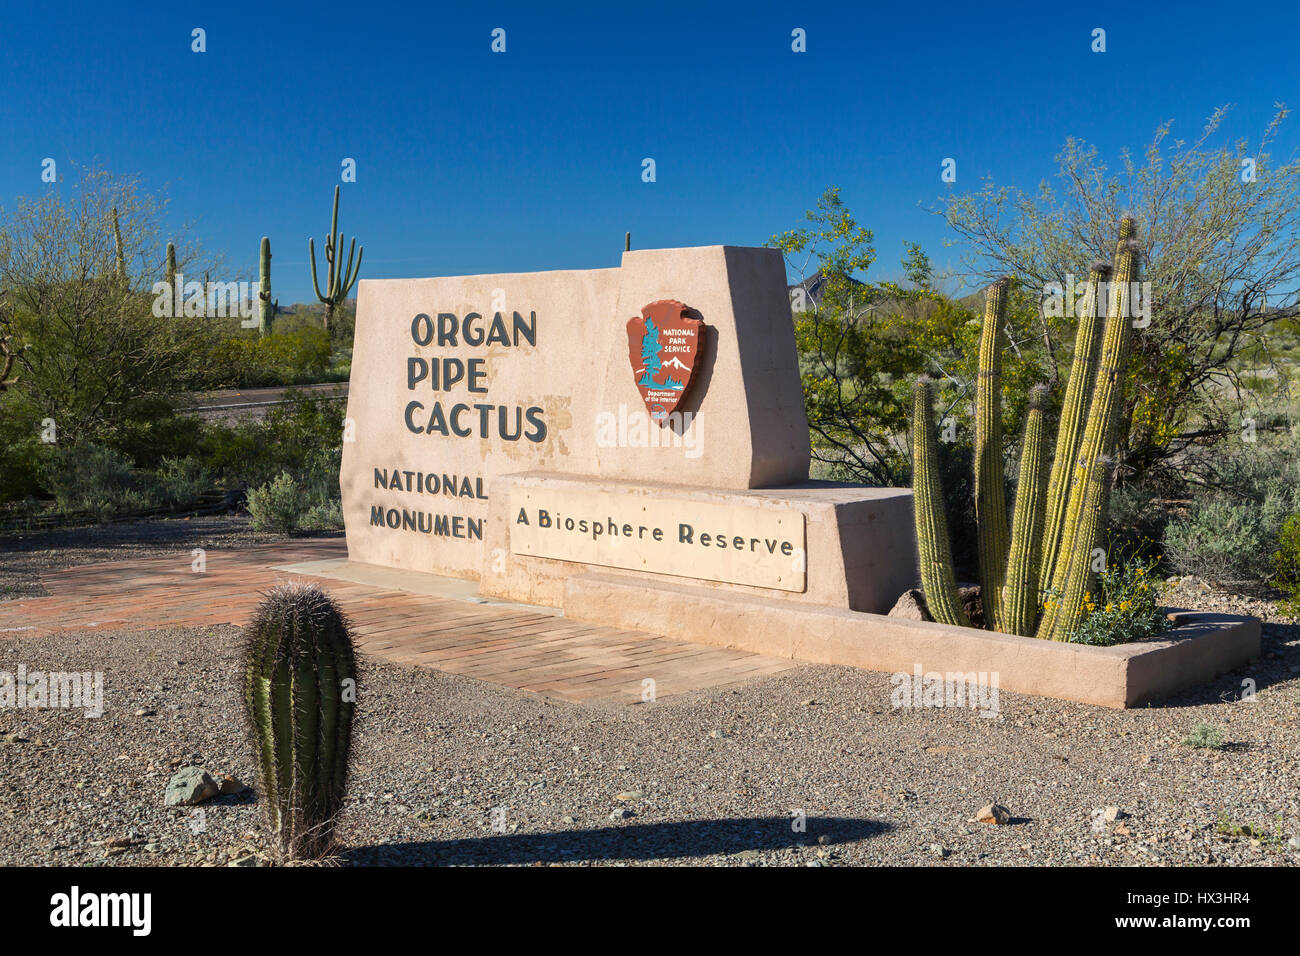 Entrance sign at the Organ Pipe Cactus National Monument, Arizona, USA. - Stock Image